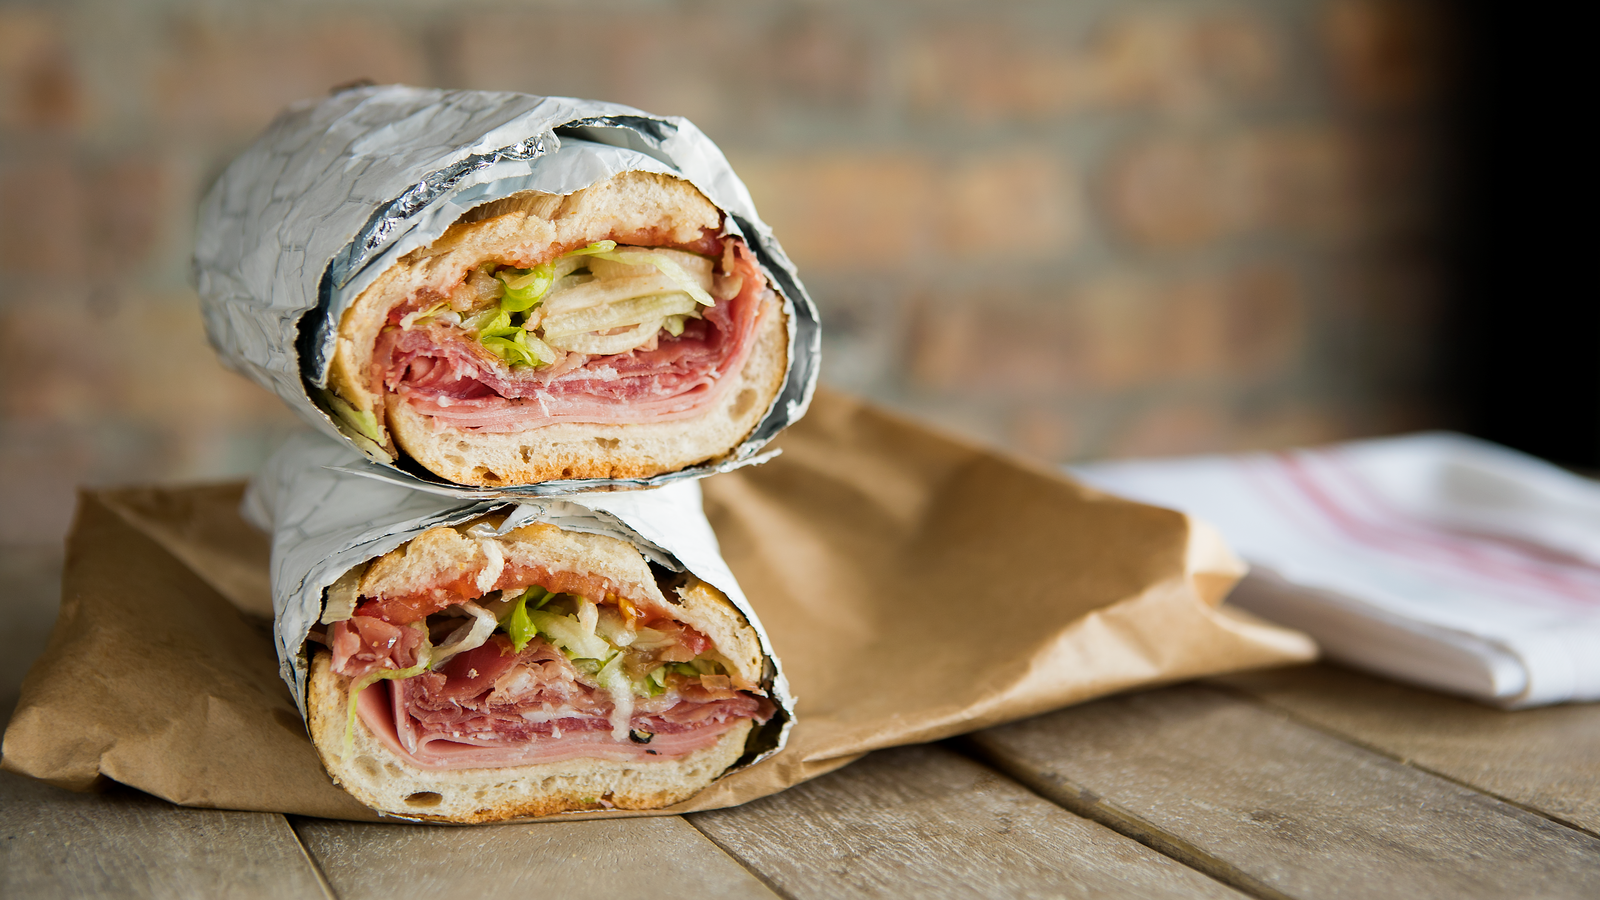 Check Out the Sandwich Lineup at Melrose's Latest East Coast Deli